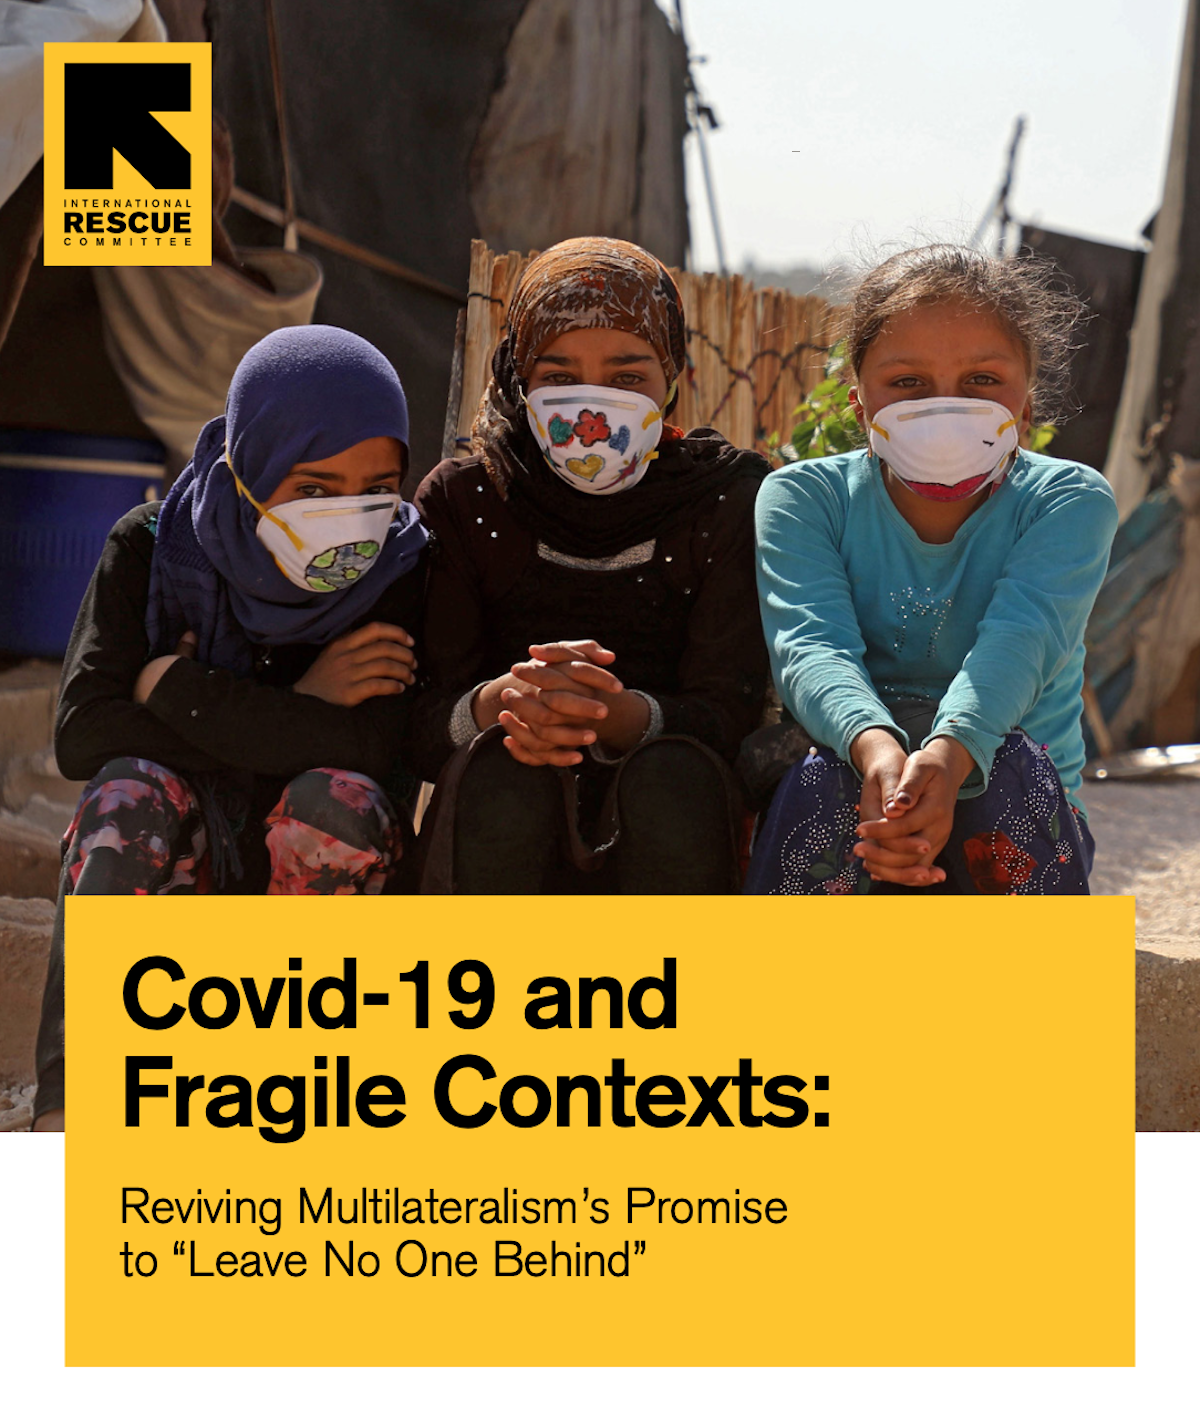 Emily Wasik Covid-19 Impact on Vulnerable Populations Report International Rescue Committee Economist Intelligence Unit Multilateralism Fragile Contexts